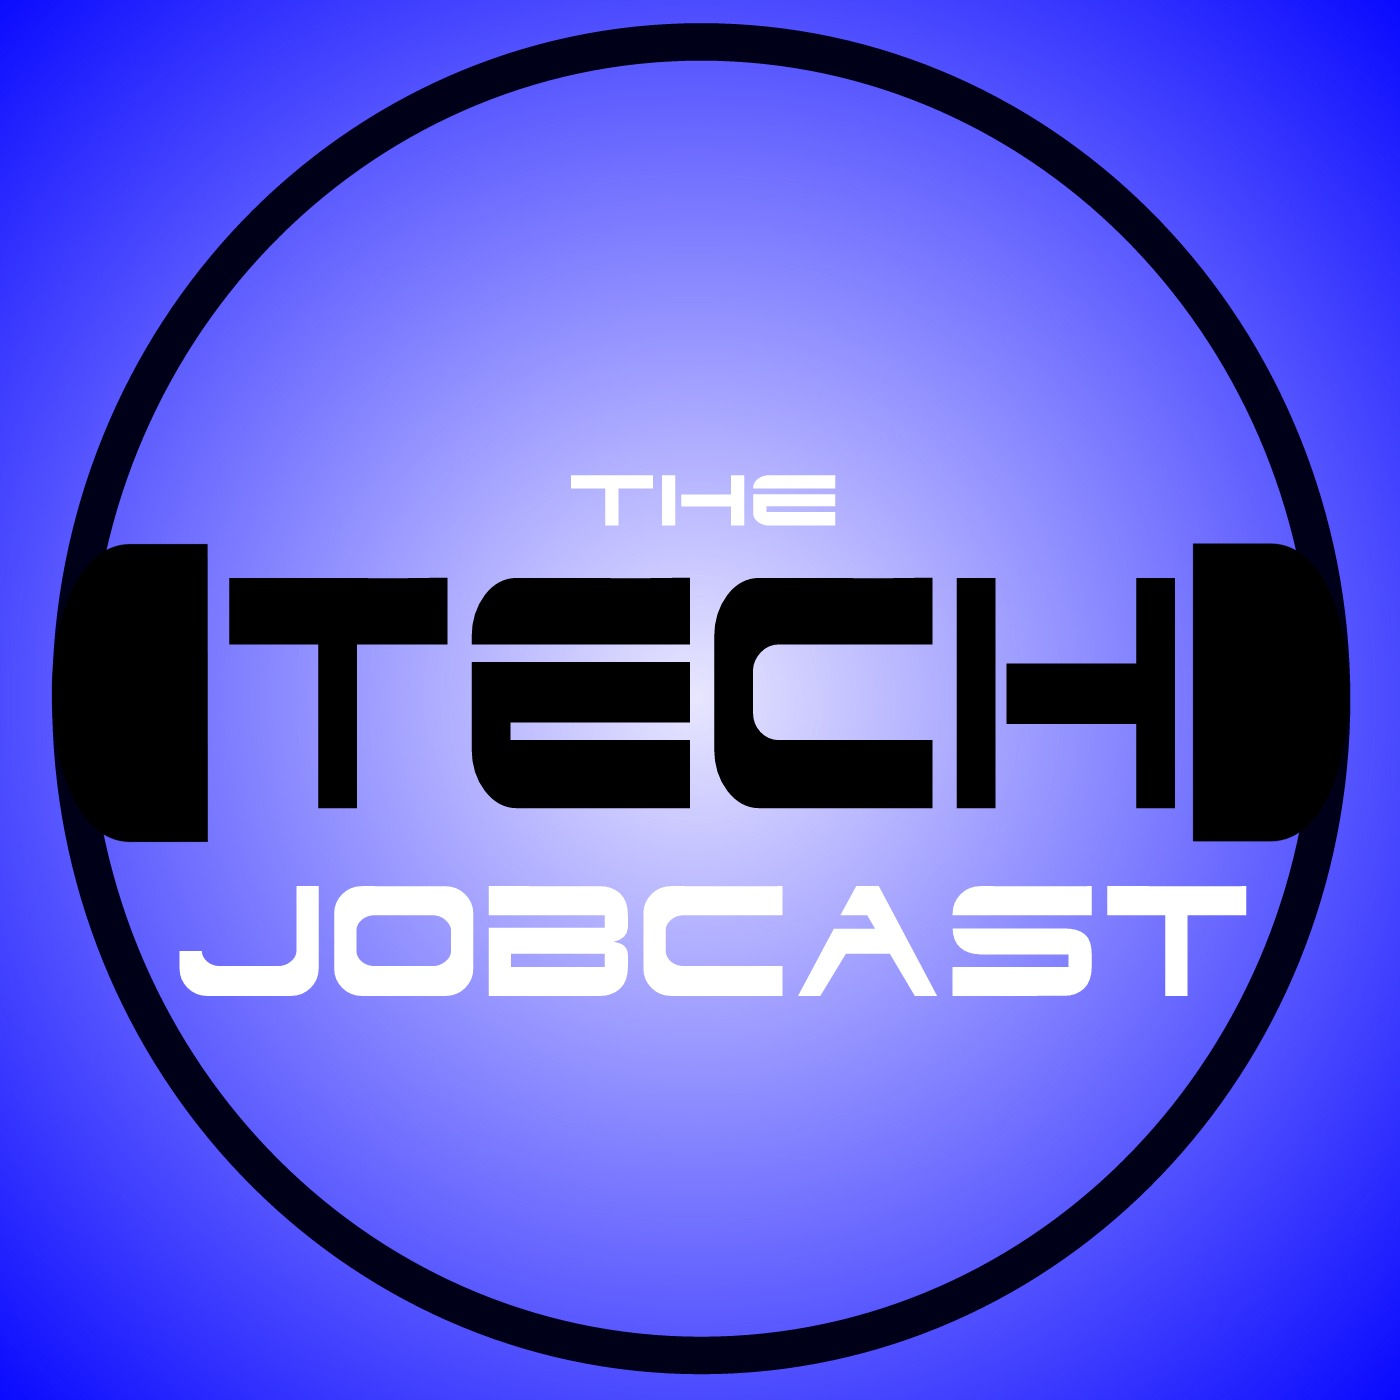 IT Job listings for the week of June 7, 2020